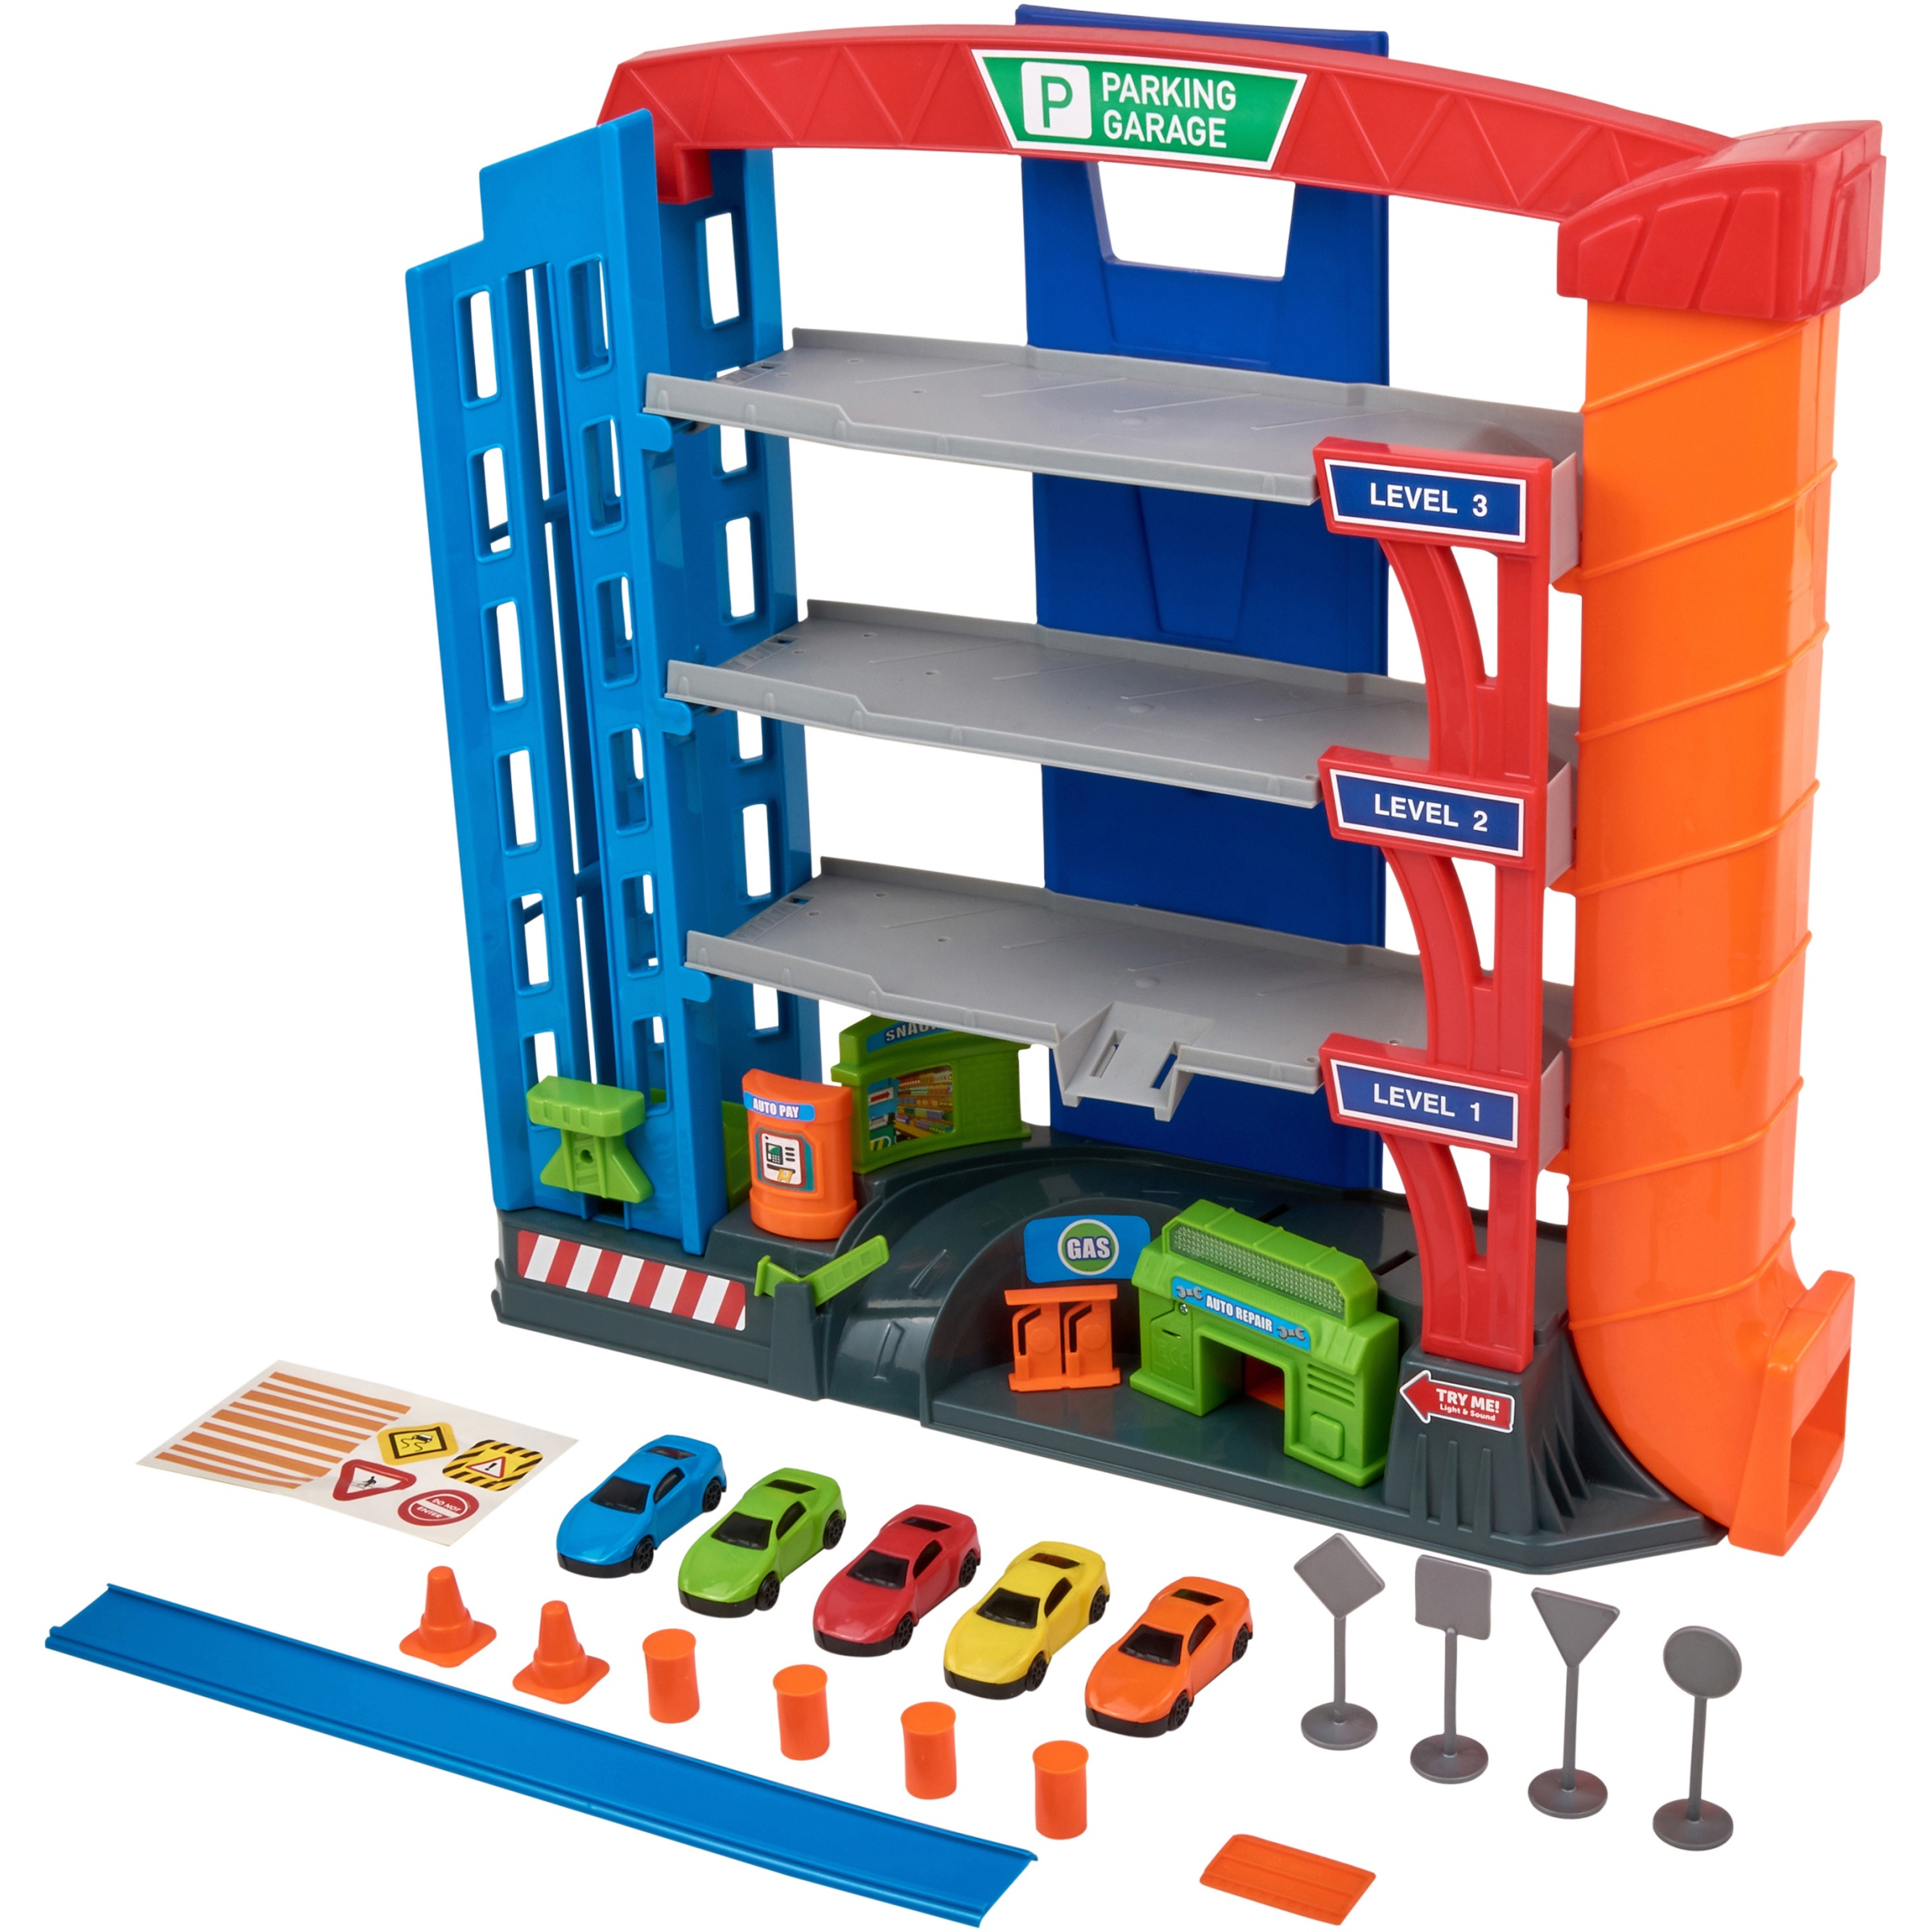 Kid Connection 17-Piece 3-Level Light & Sound Garage Play Set